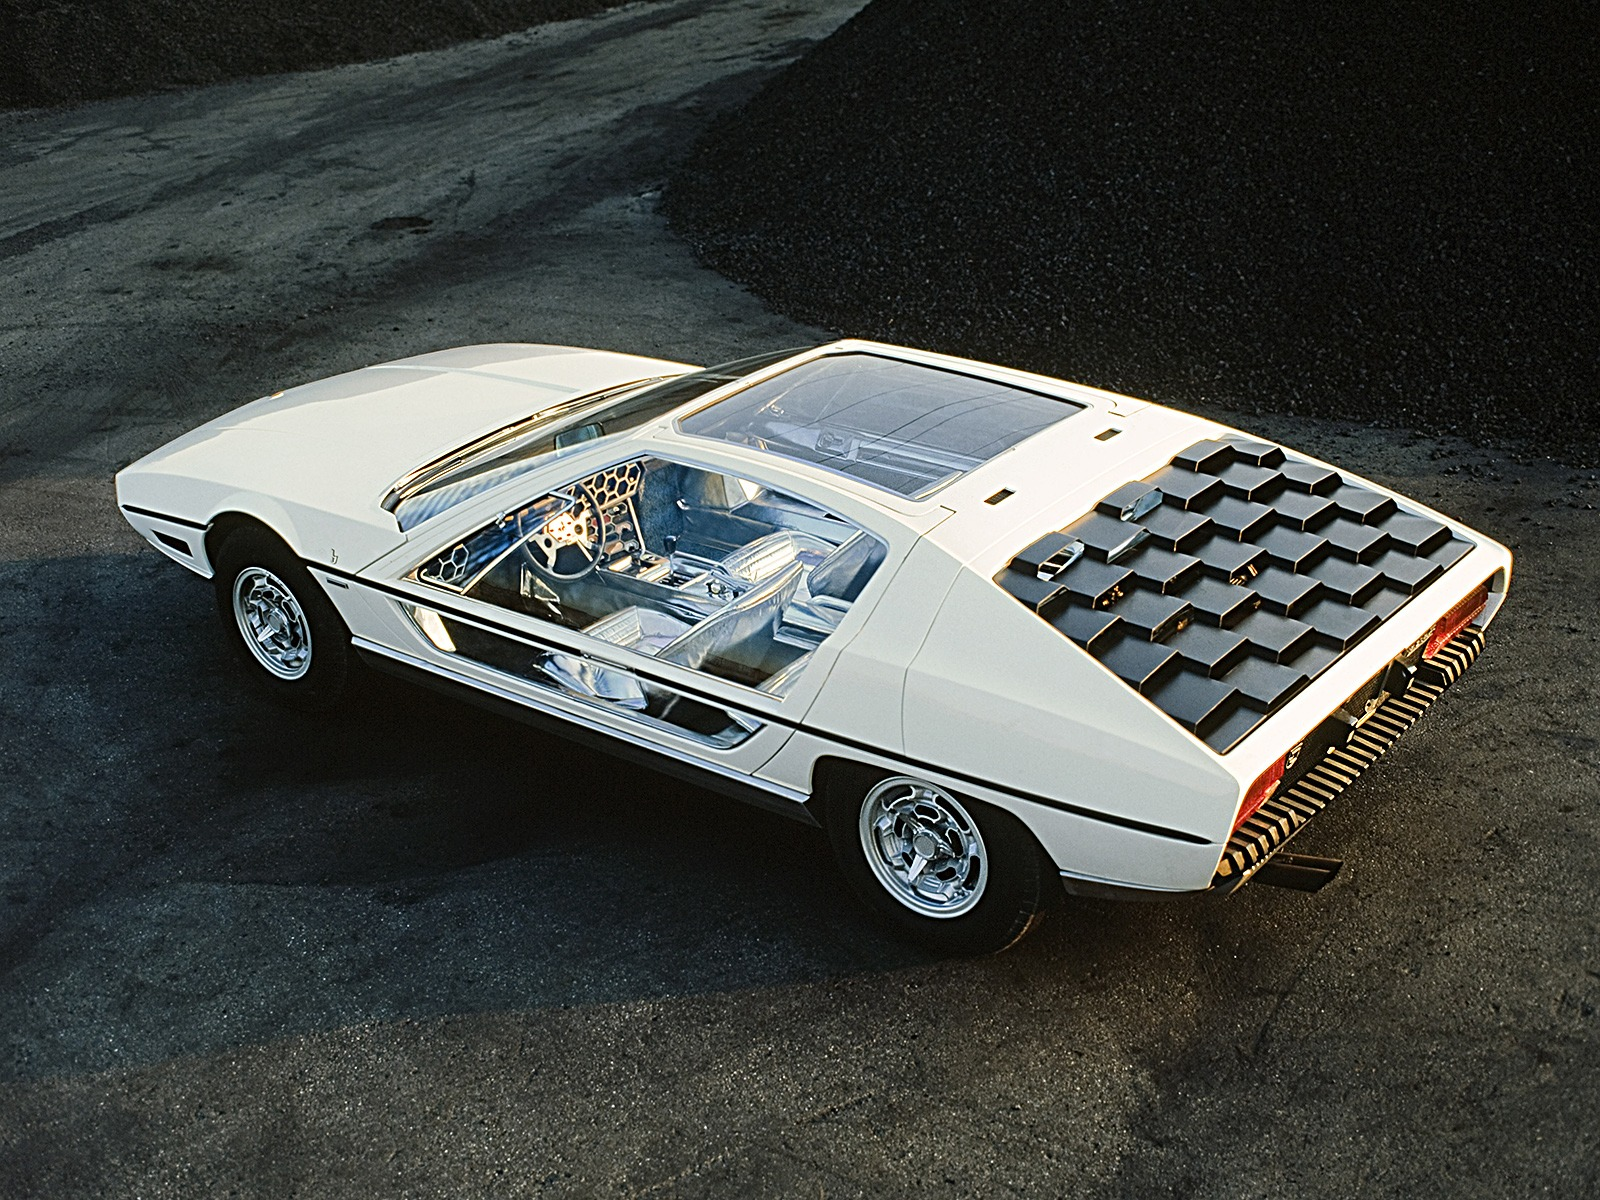 The Most Stunning Concept Cars Of 1960s Old Ford Sports Lamborghini Marzal 1967